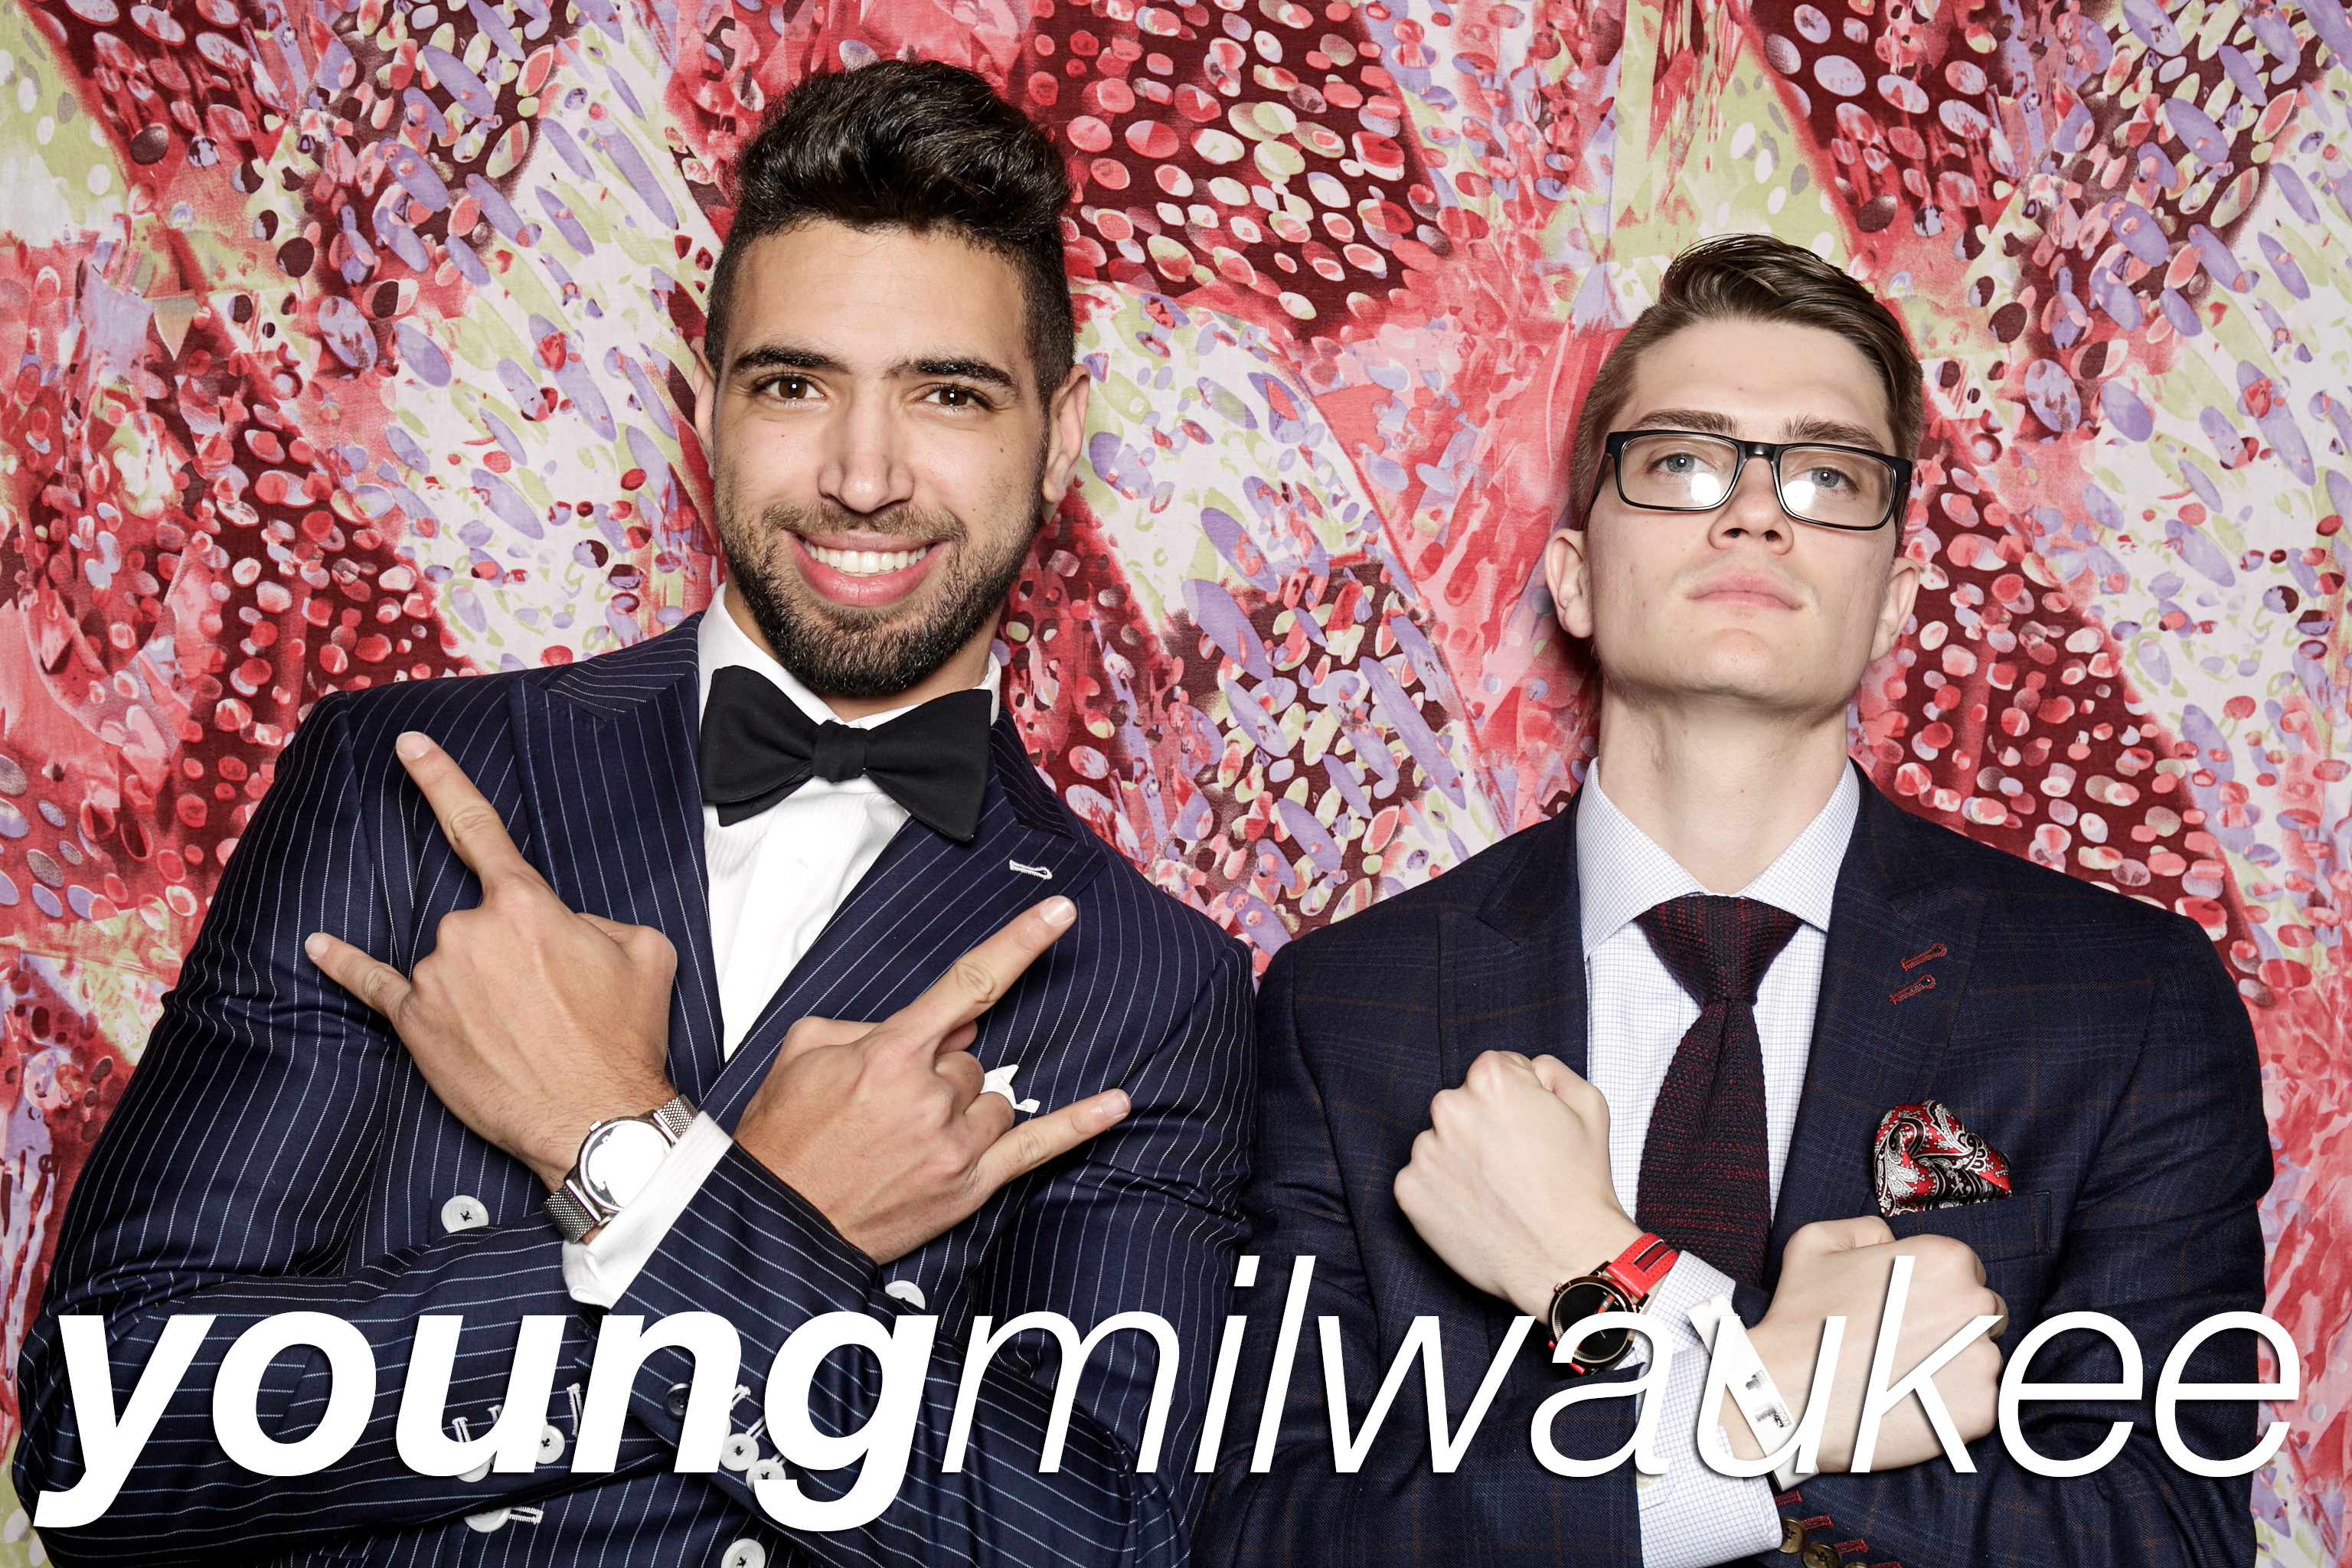 portrait booth photos from the young milwaukee holiday gala, december 2017